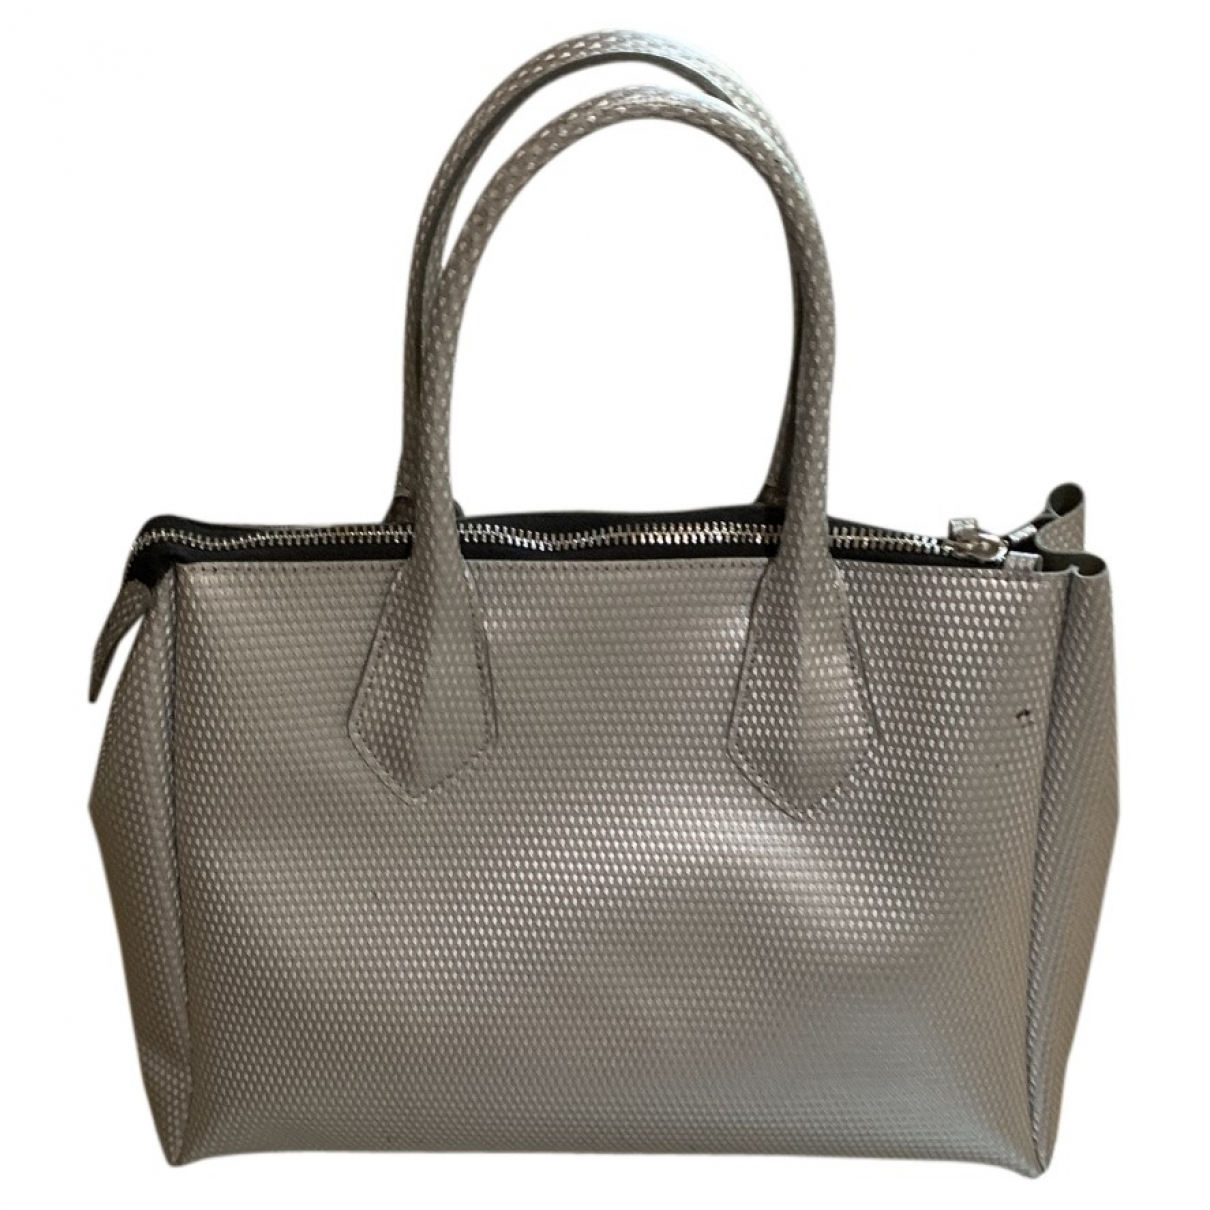 Gianni Chiarini \N Grey Leather handbag for Women \N